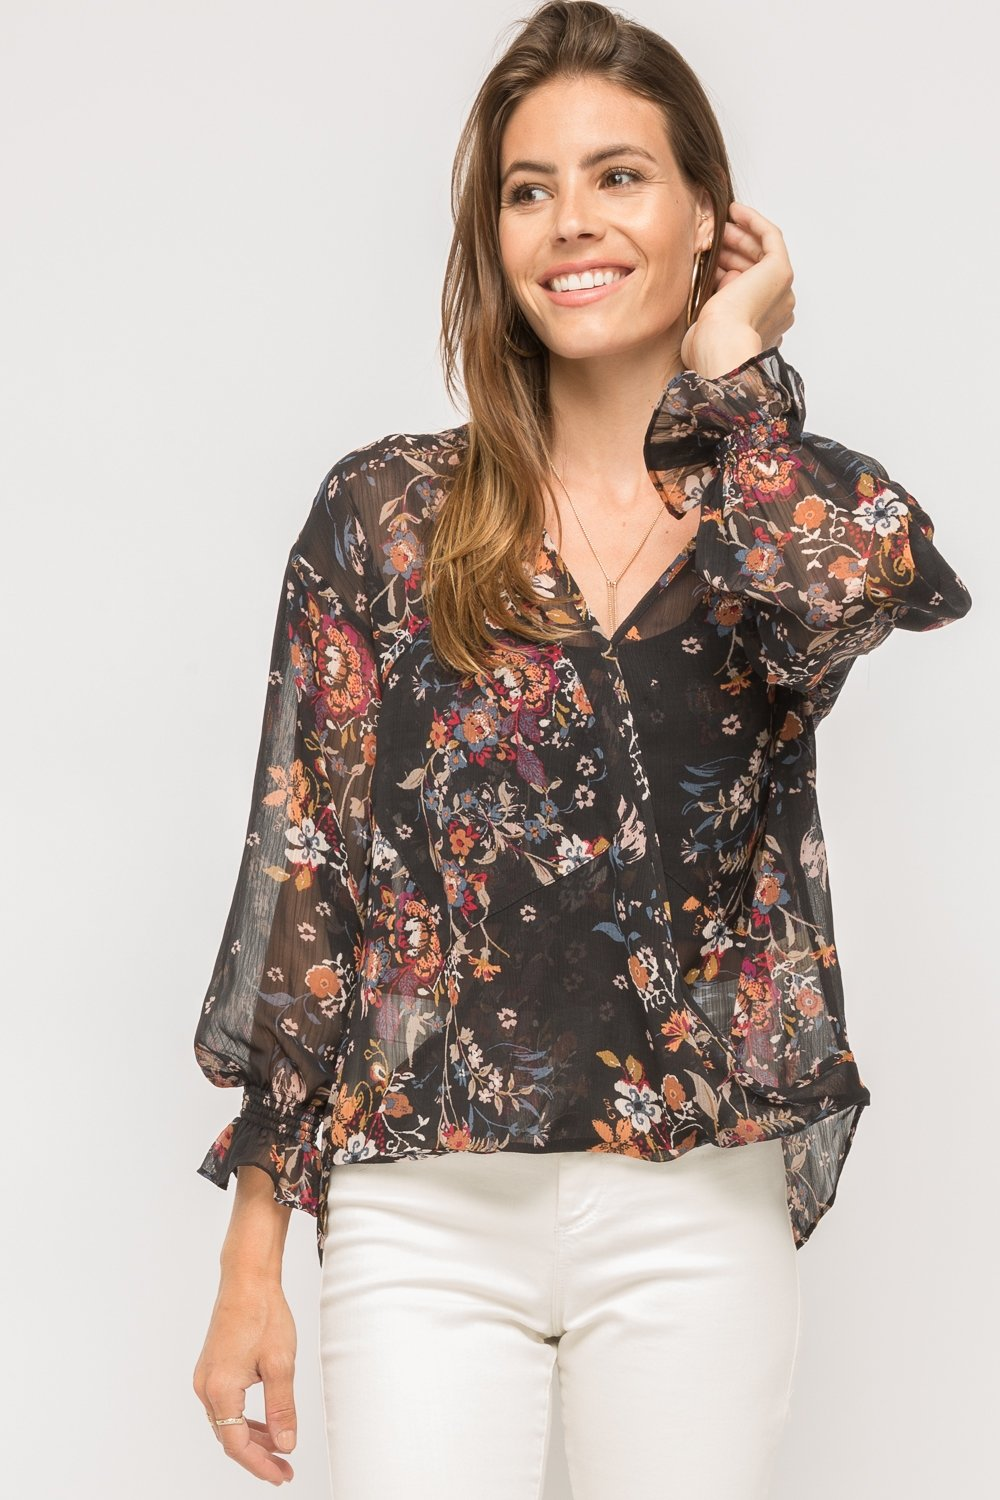 Crossover Hi/Low Printed Blouse from Mystree